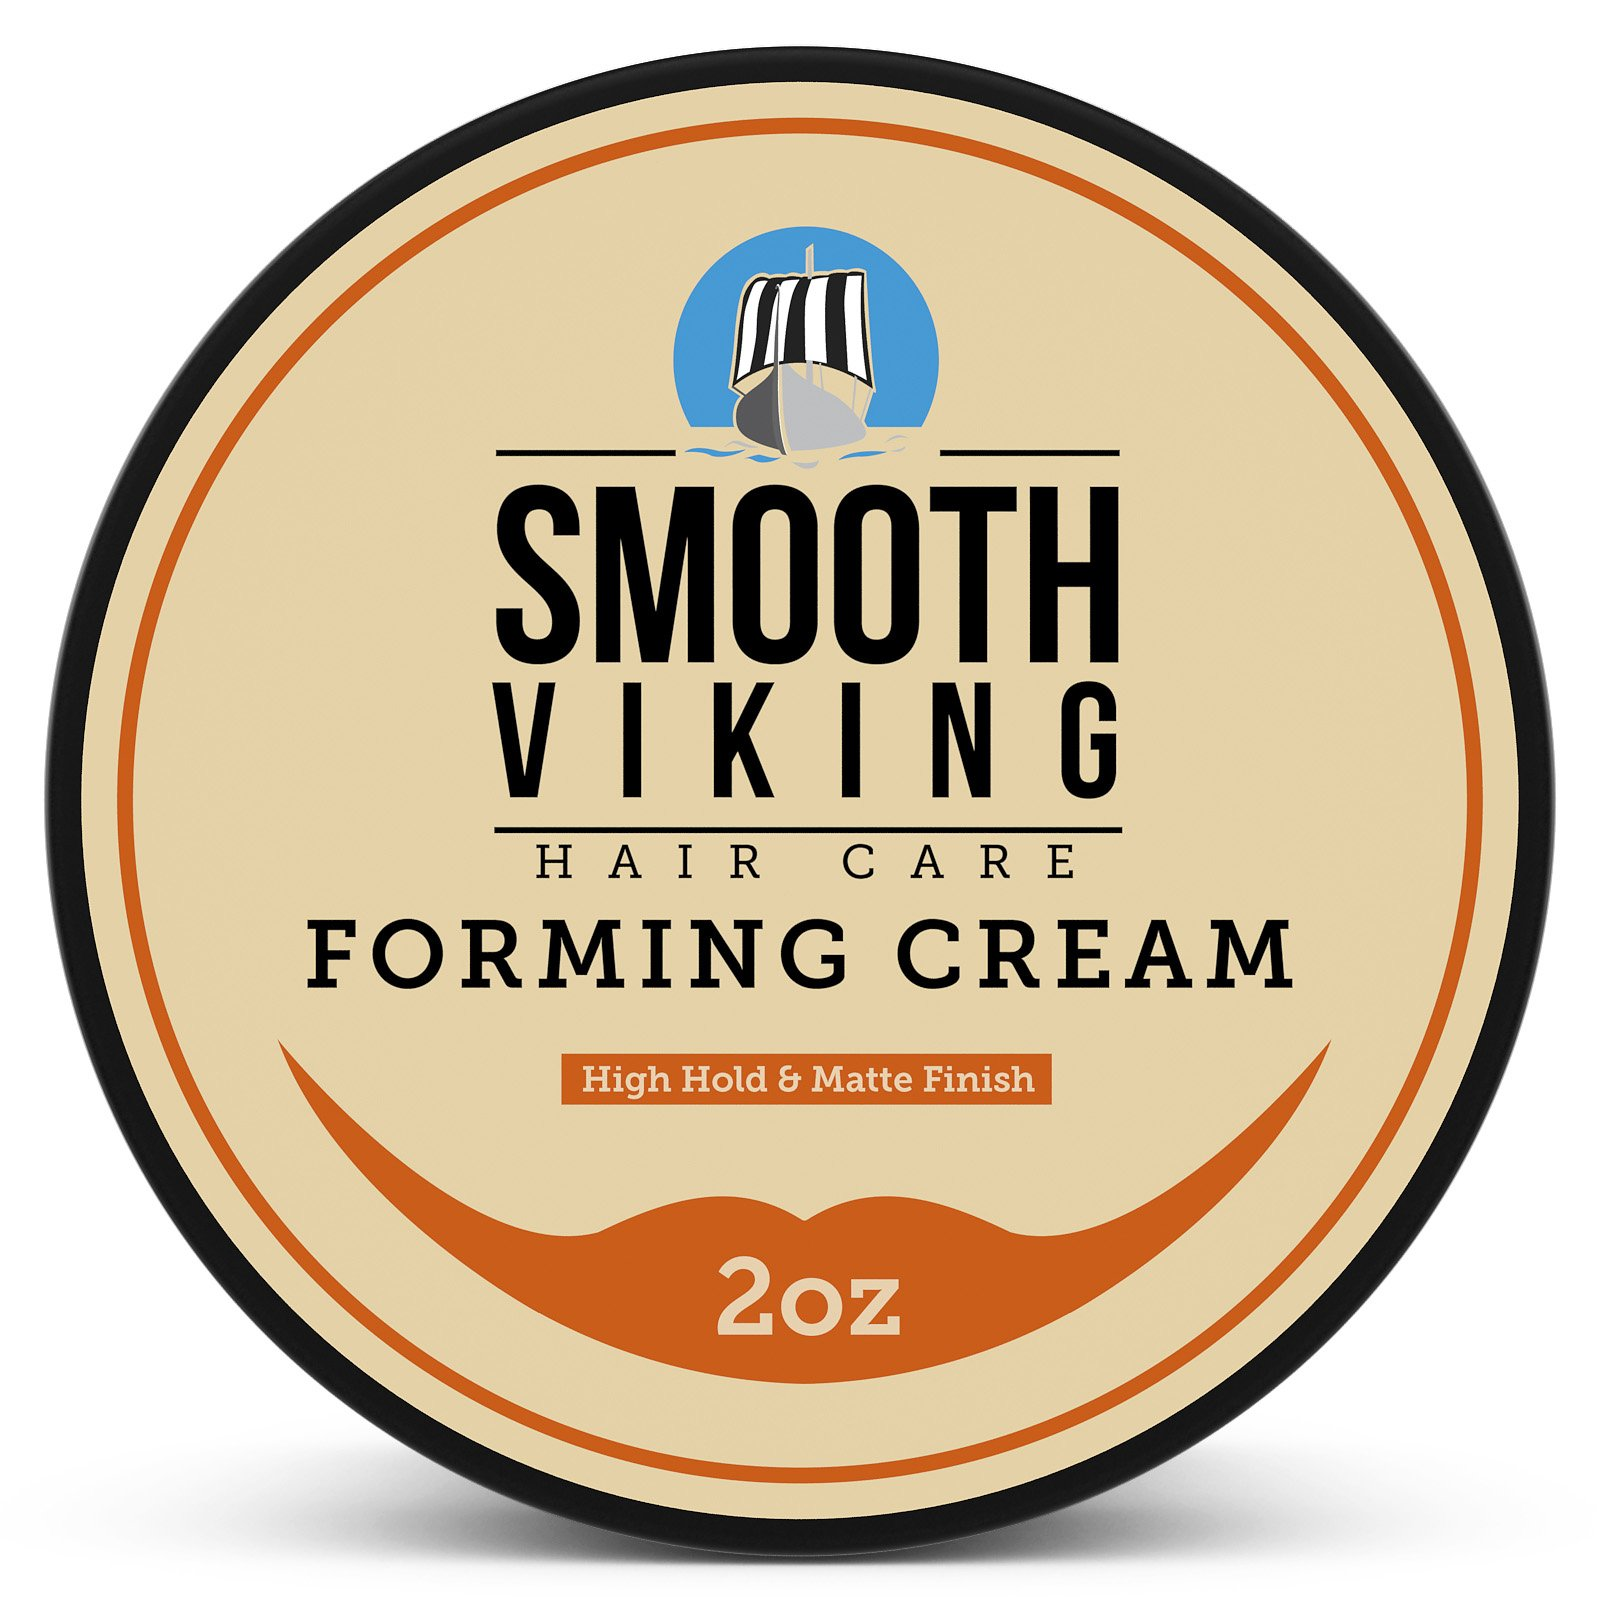 Forming Cream for Men - Hair Styling Cream for High Hold & Matte Finish - Best Pliable Formula for Modern, Classic & Slick Styles - Short, Long & All Other Hair Types- 2 OZ - Smooth Viking by Smooth Viking Beard Care